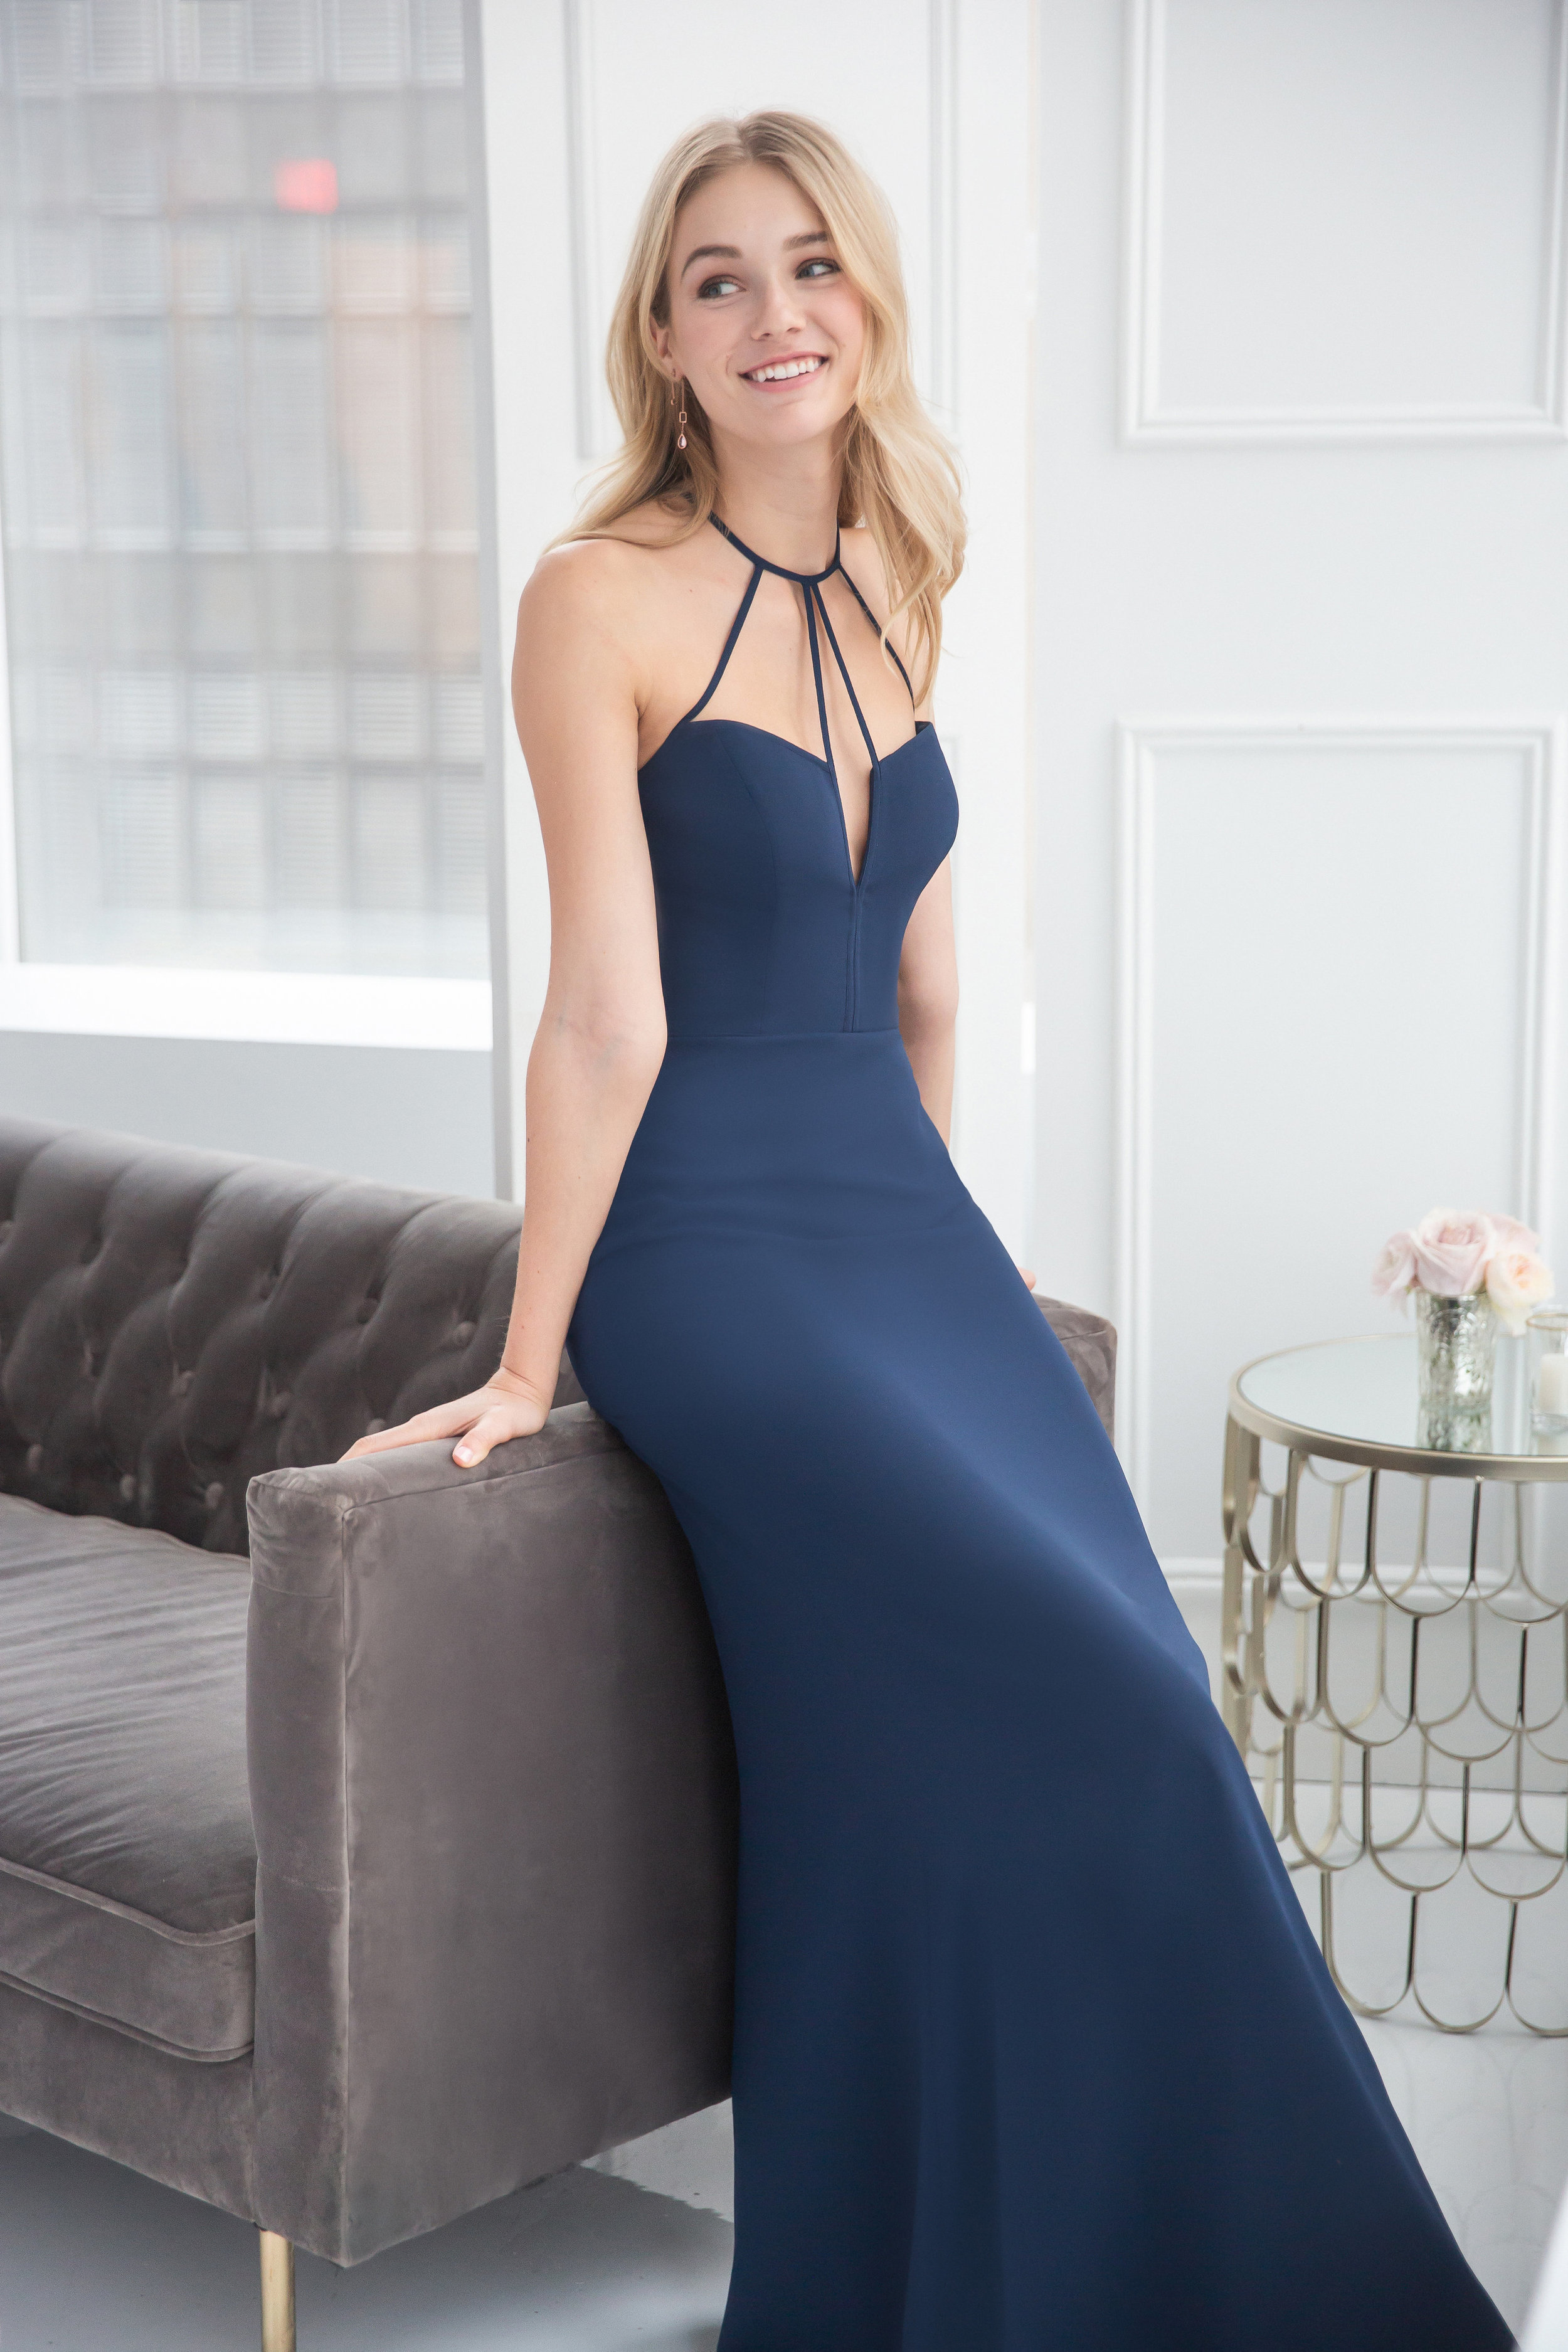 ivory-and-beau-bridesmaid-dresses-special-occasion-hayley-paige-occasions-bridesmaids-spring-2019-style-5911_7.jpg